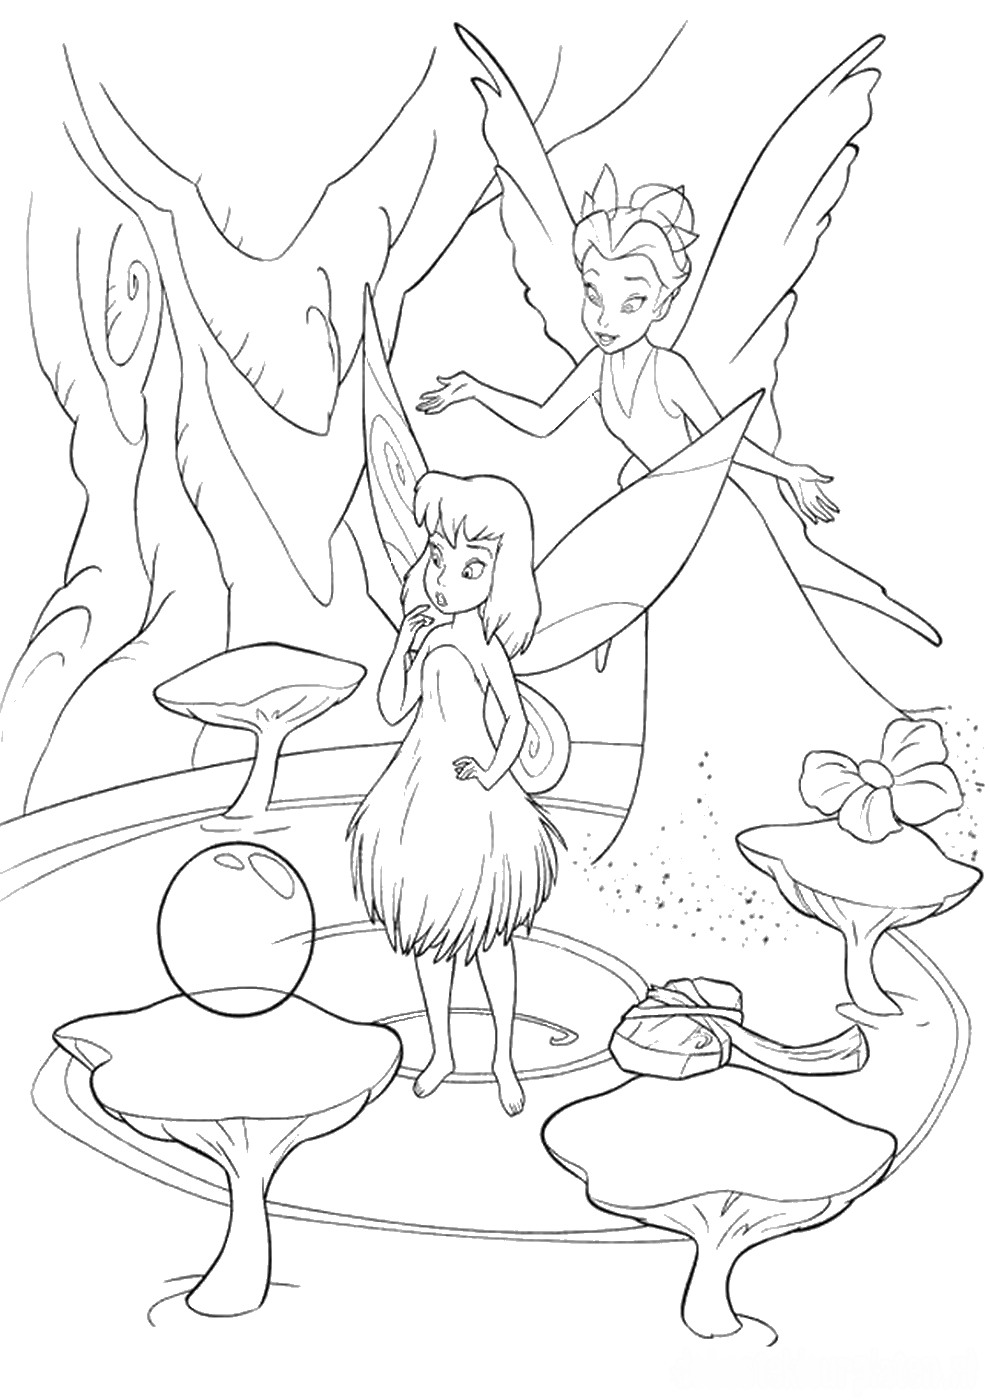 tinkerbell coloring sheets tinkerbell and friends coloring pages team colors tinkerbell sheets coloring